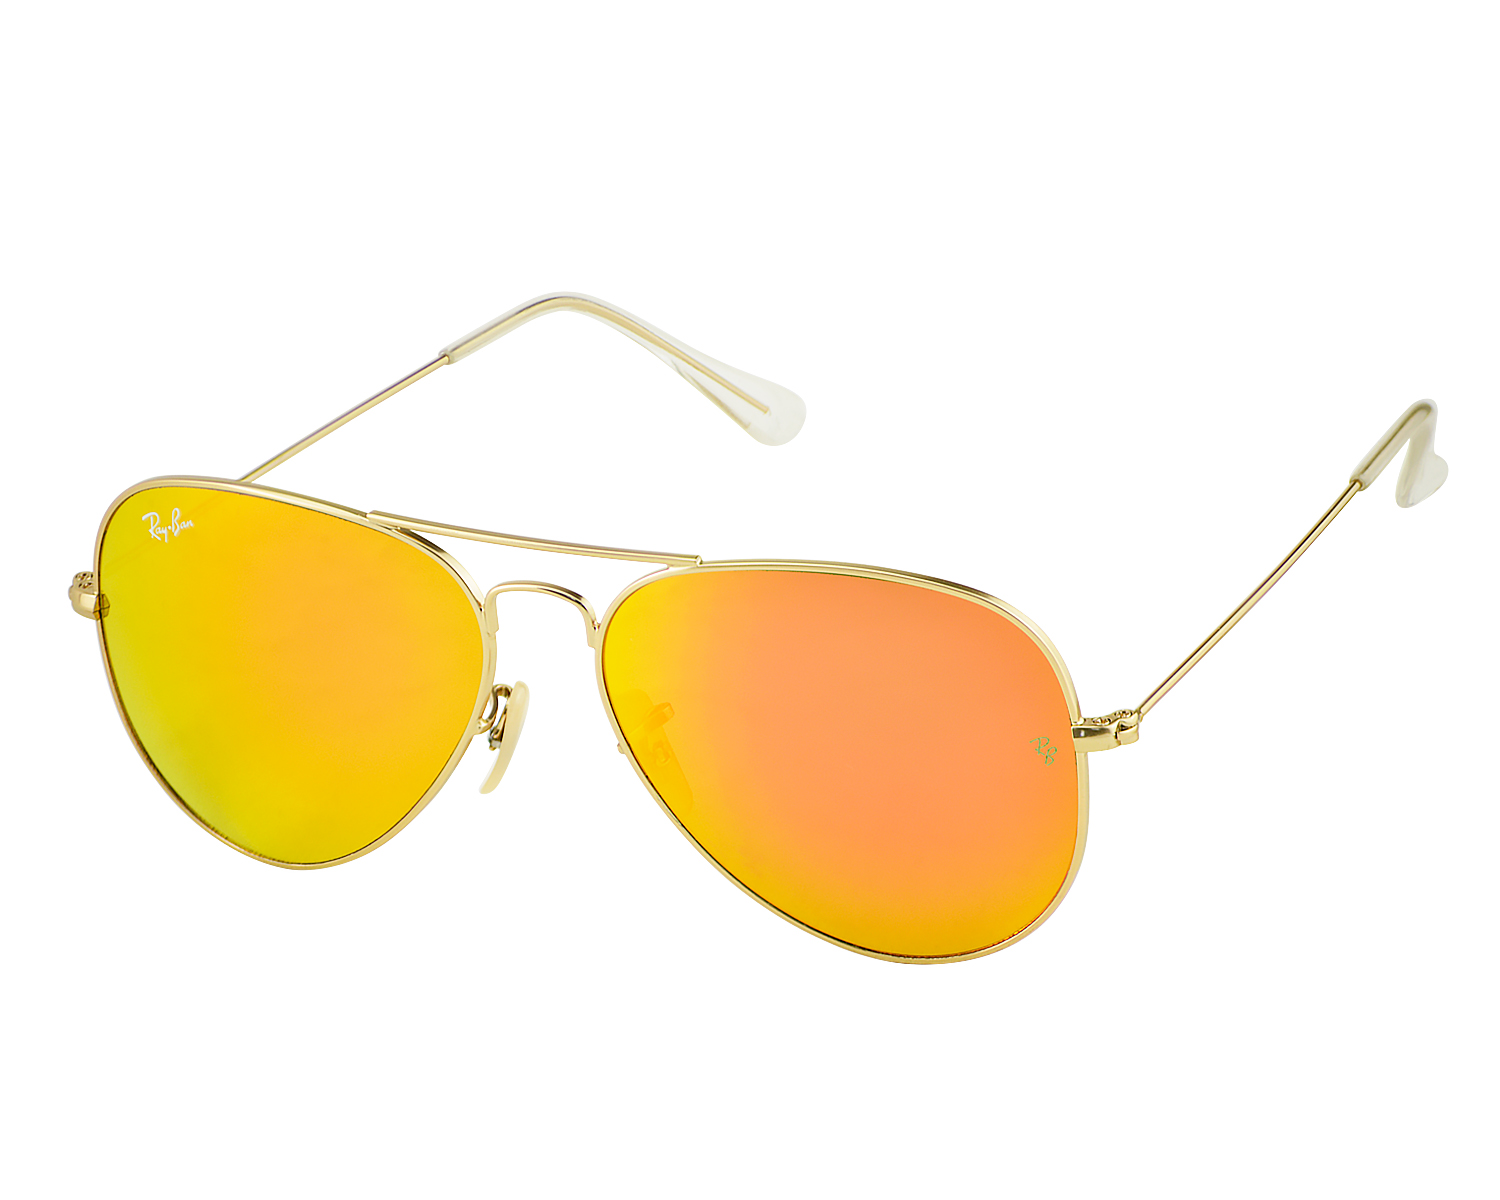 7e9ba00997 Ray-Ban RB3025 Aviator Flash Lenses 112 69 Gold Frame Orange Flash Lenses  Unisex Sunglasses 58mm